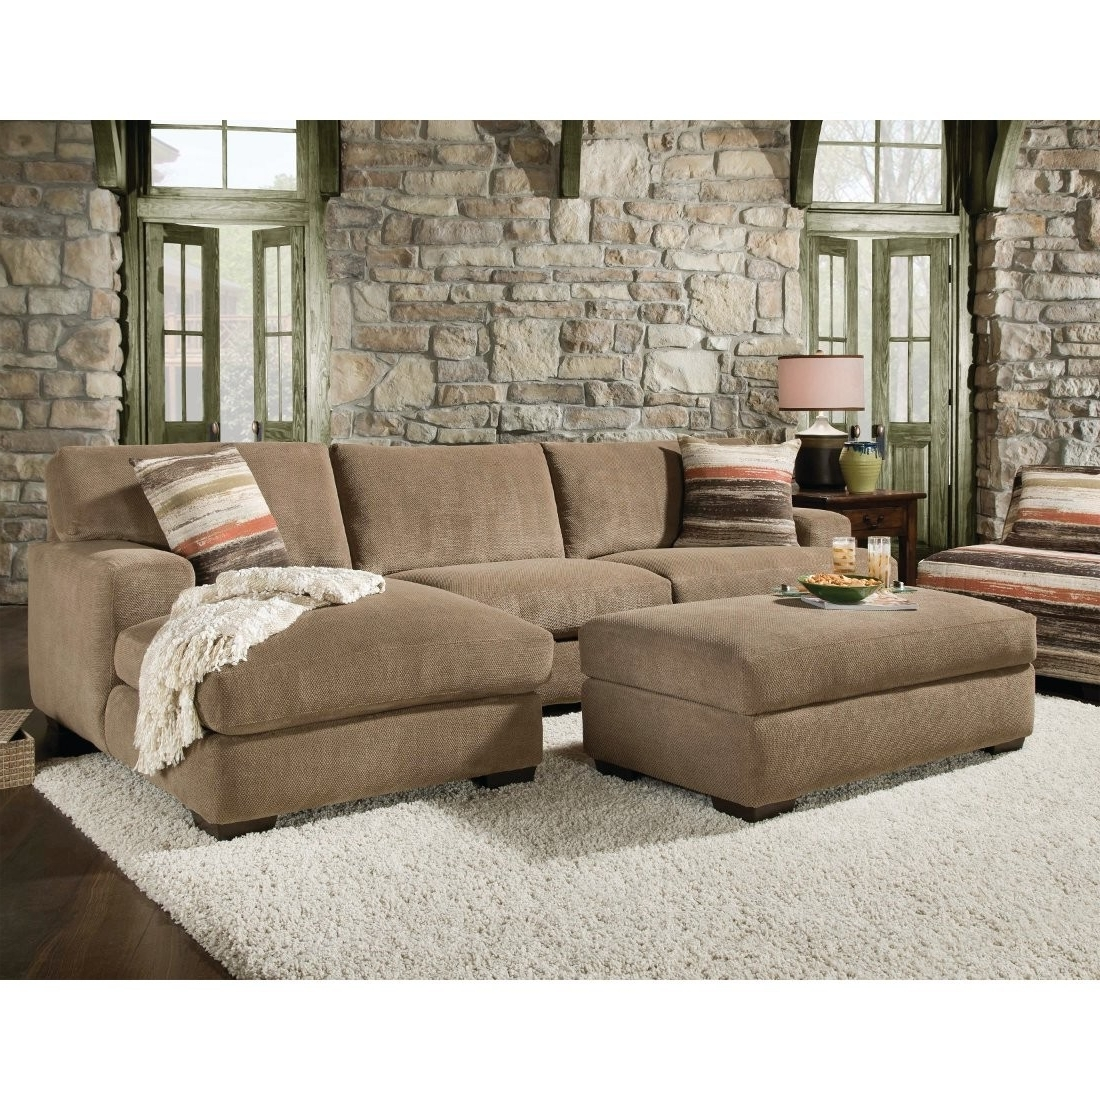 Recent Double Chaise Couches Throughout Beautiful Sectional Sofa With Chaise And Ottoman Pictures (View 12 of 15)